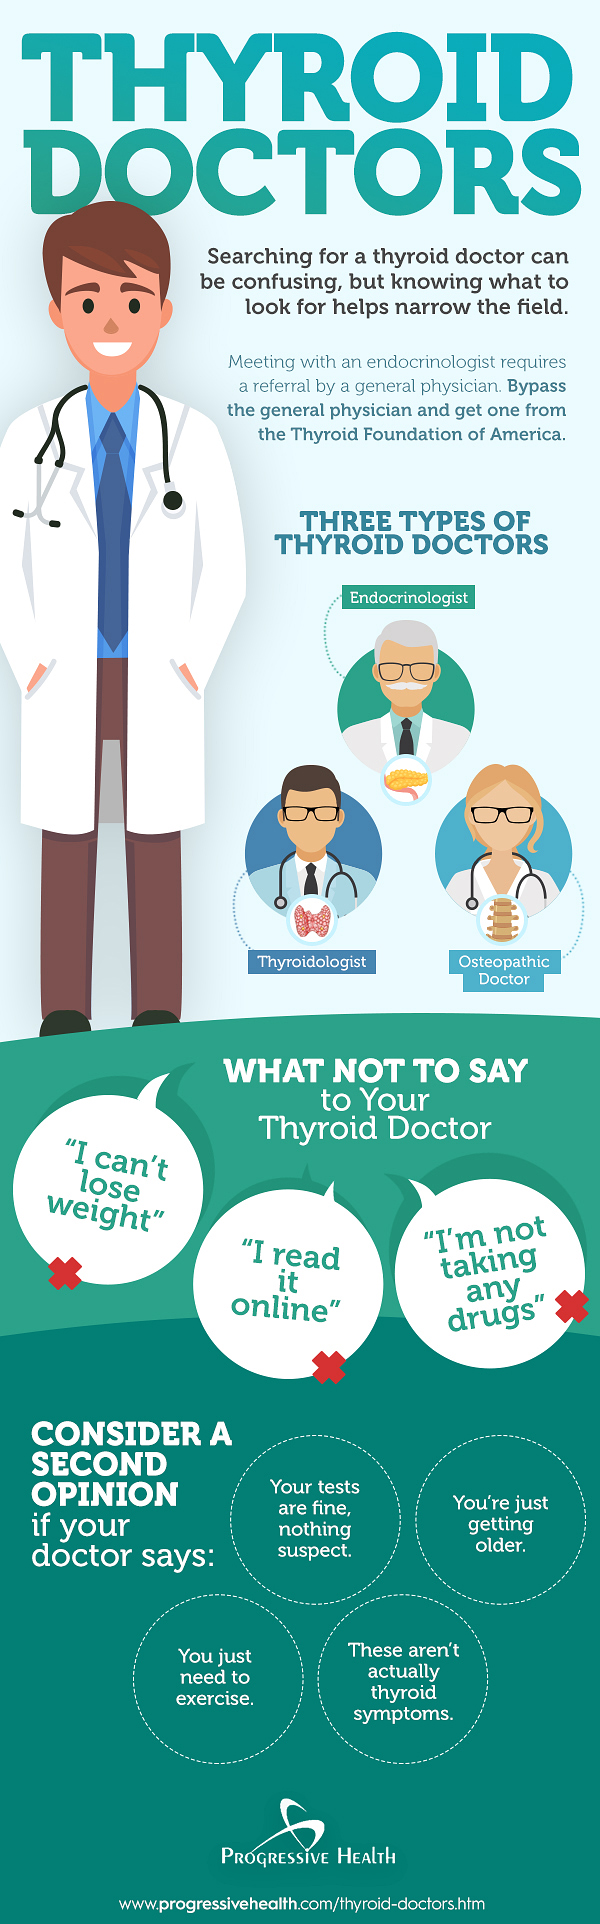 infographic about thyroid doctors